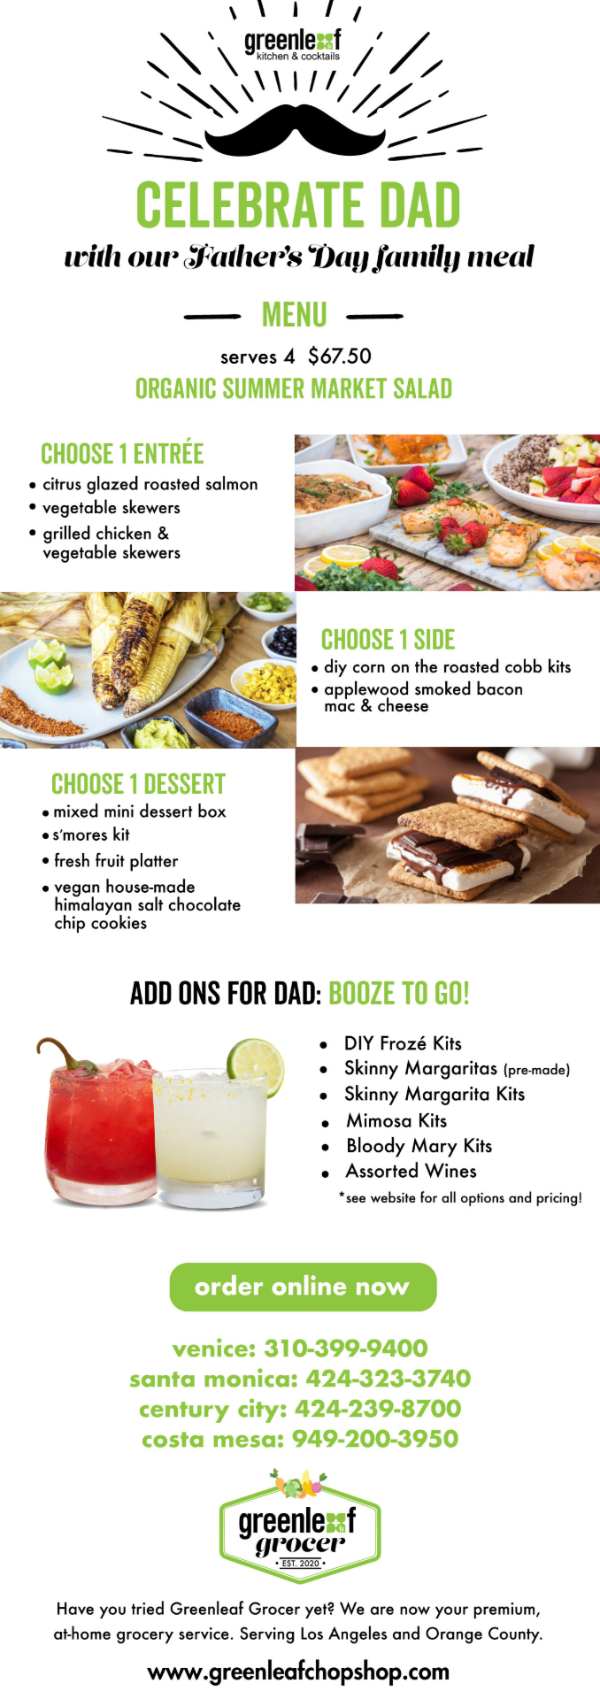 Celebrate With A Father's Day Family Meal